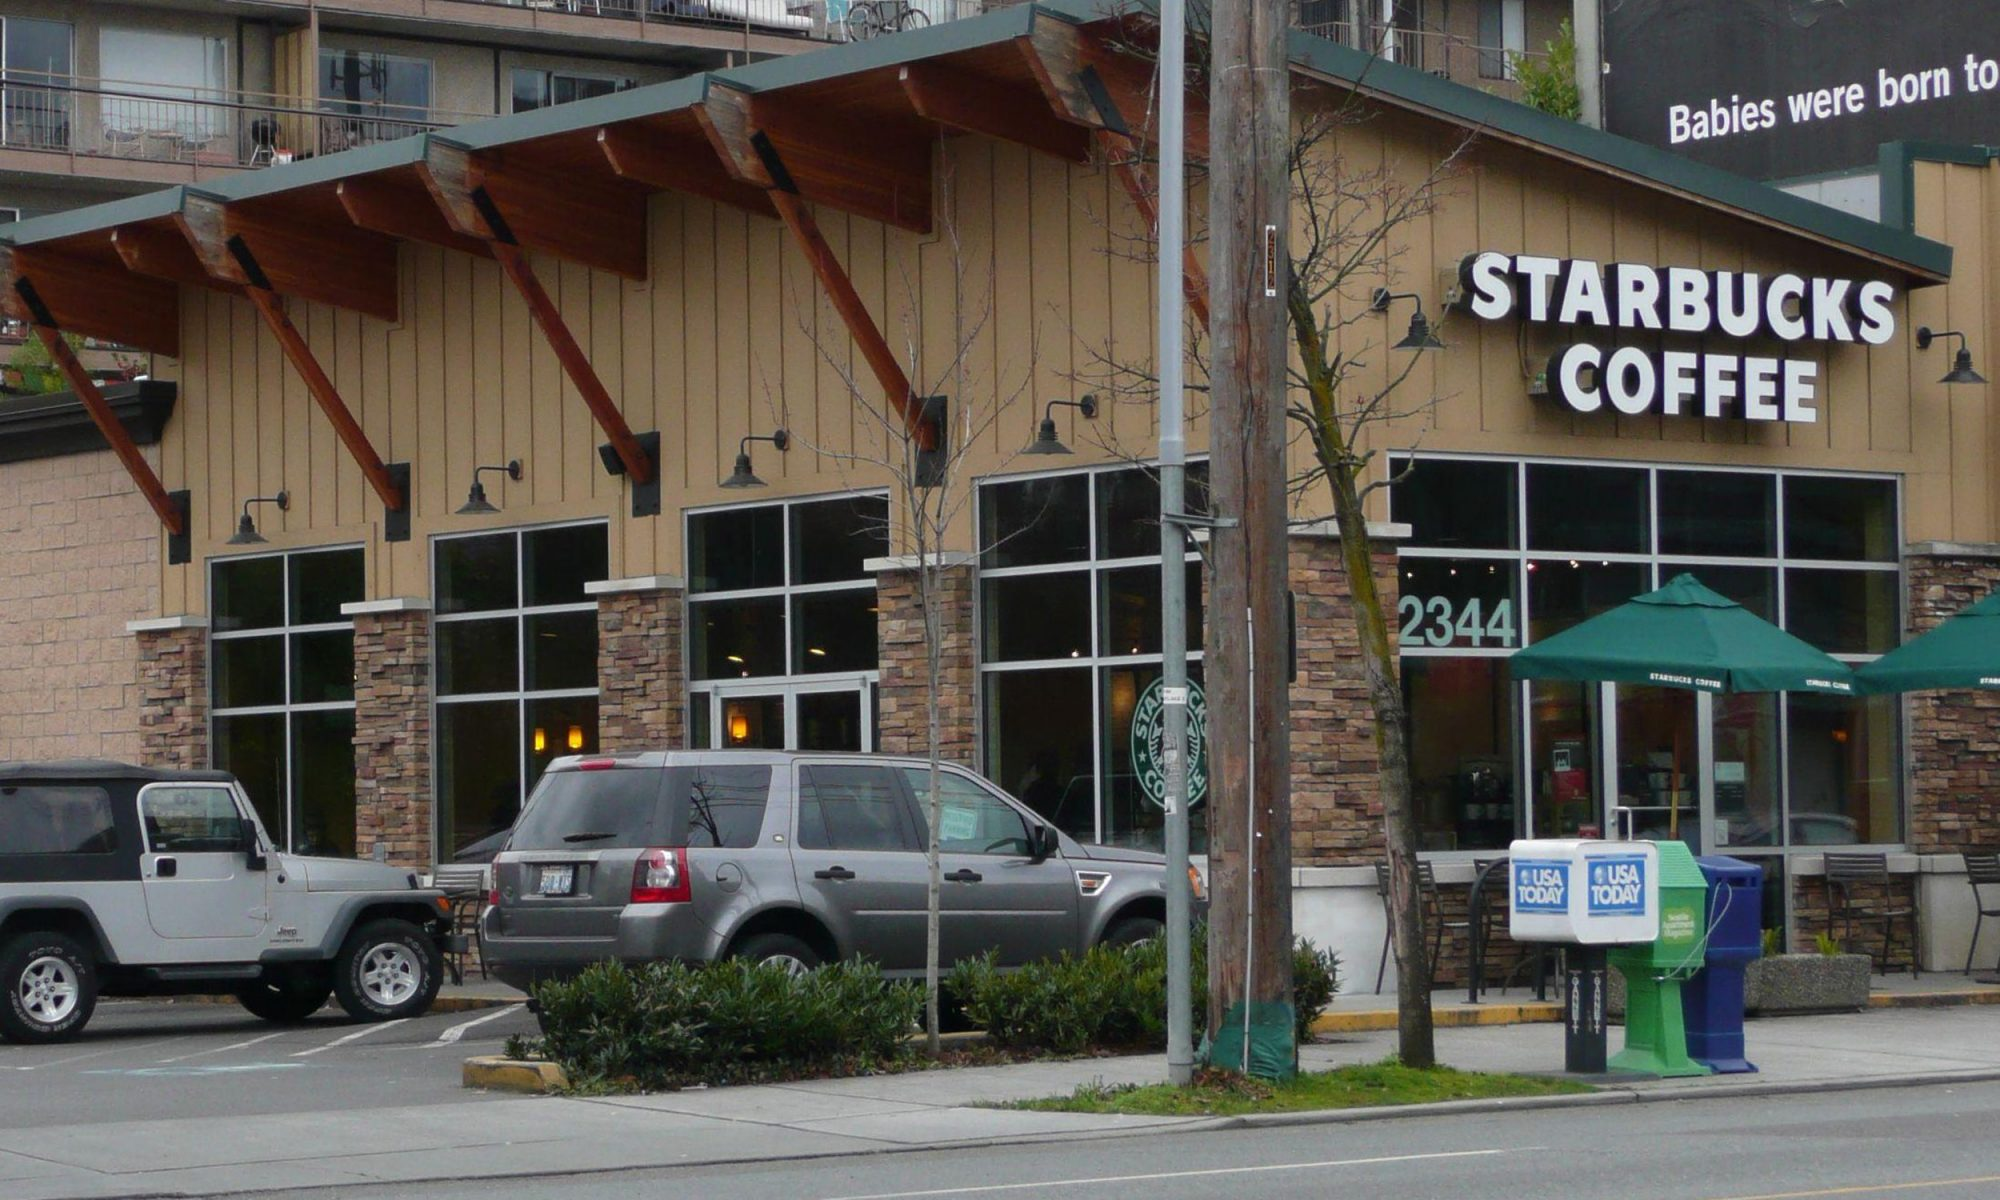 EC: Starbucks Curbside Pickup Is Your New Method of Caffeination